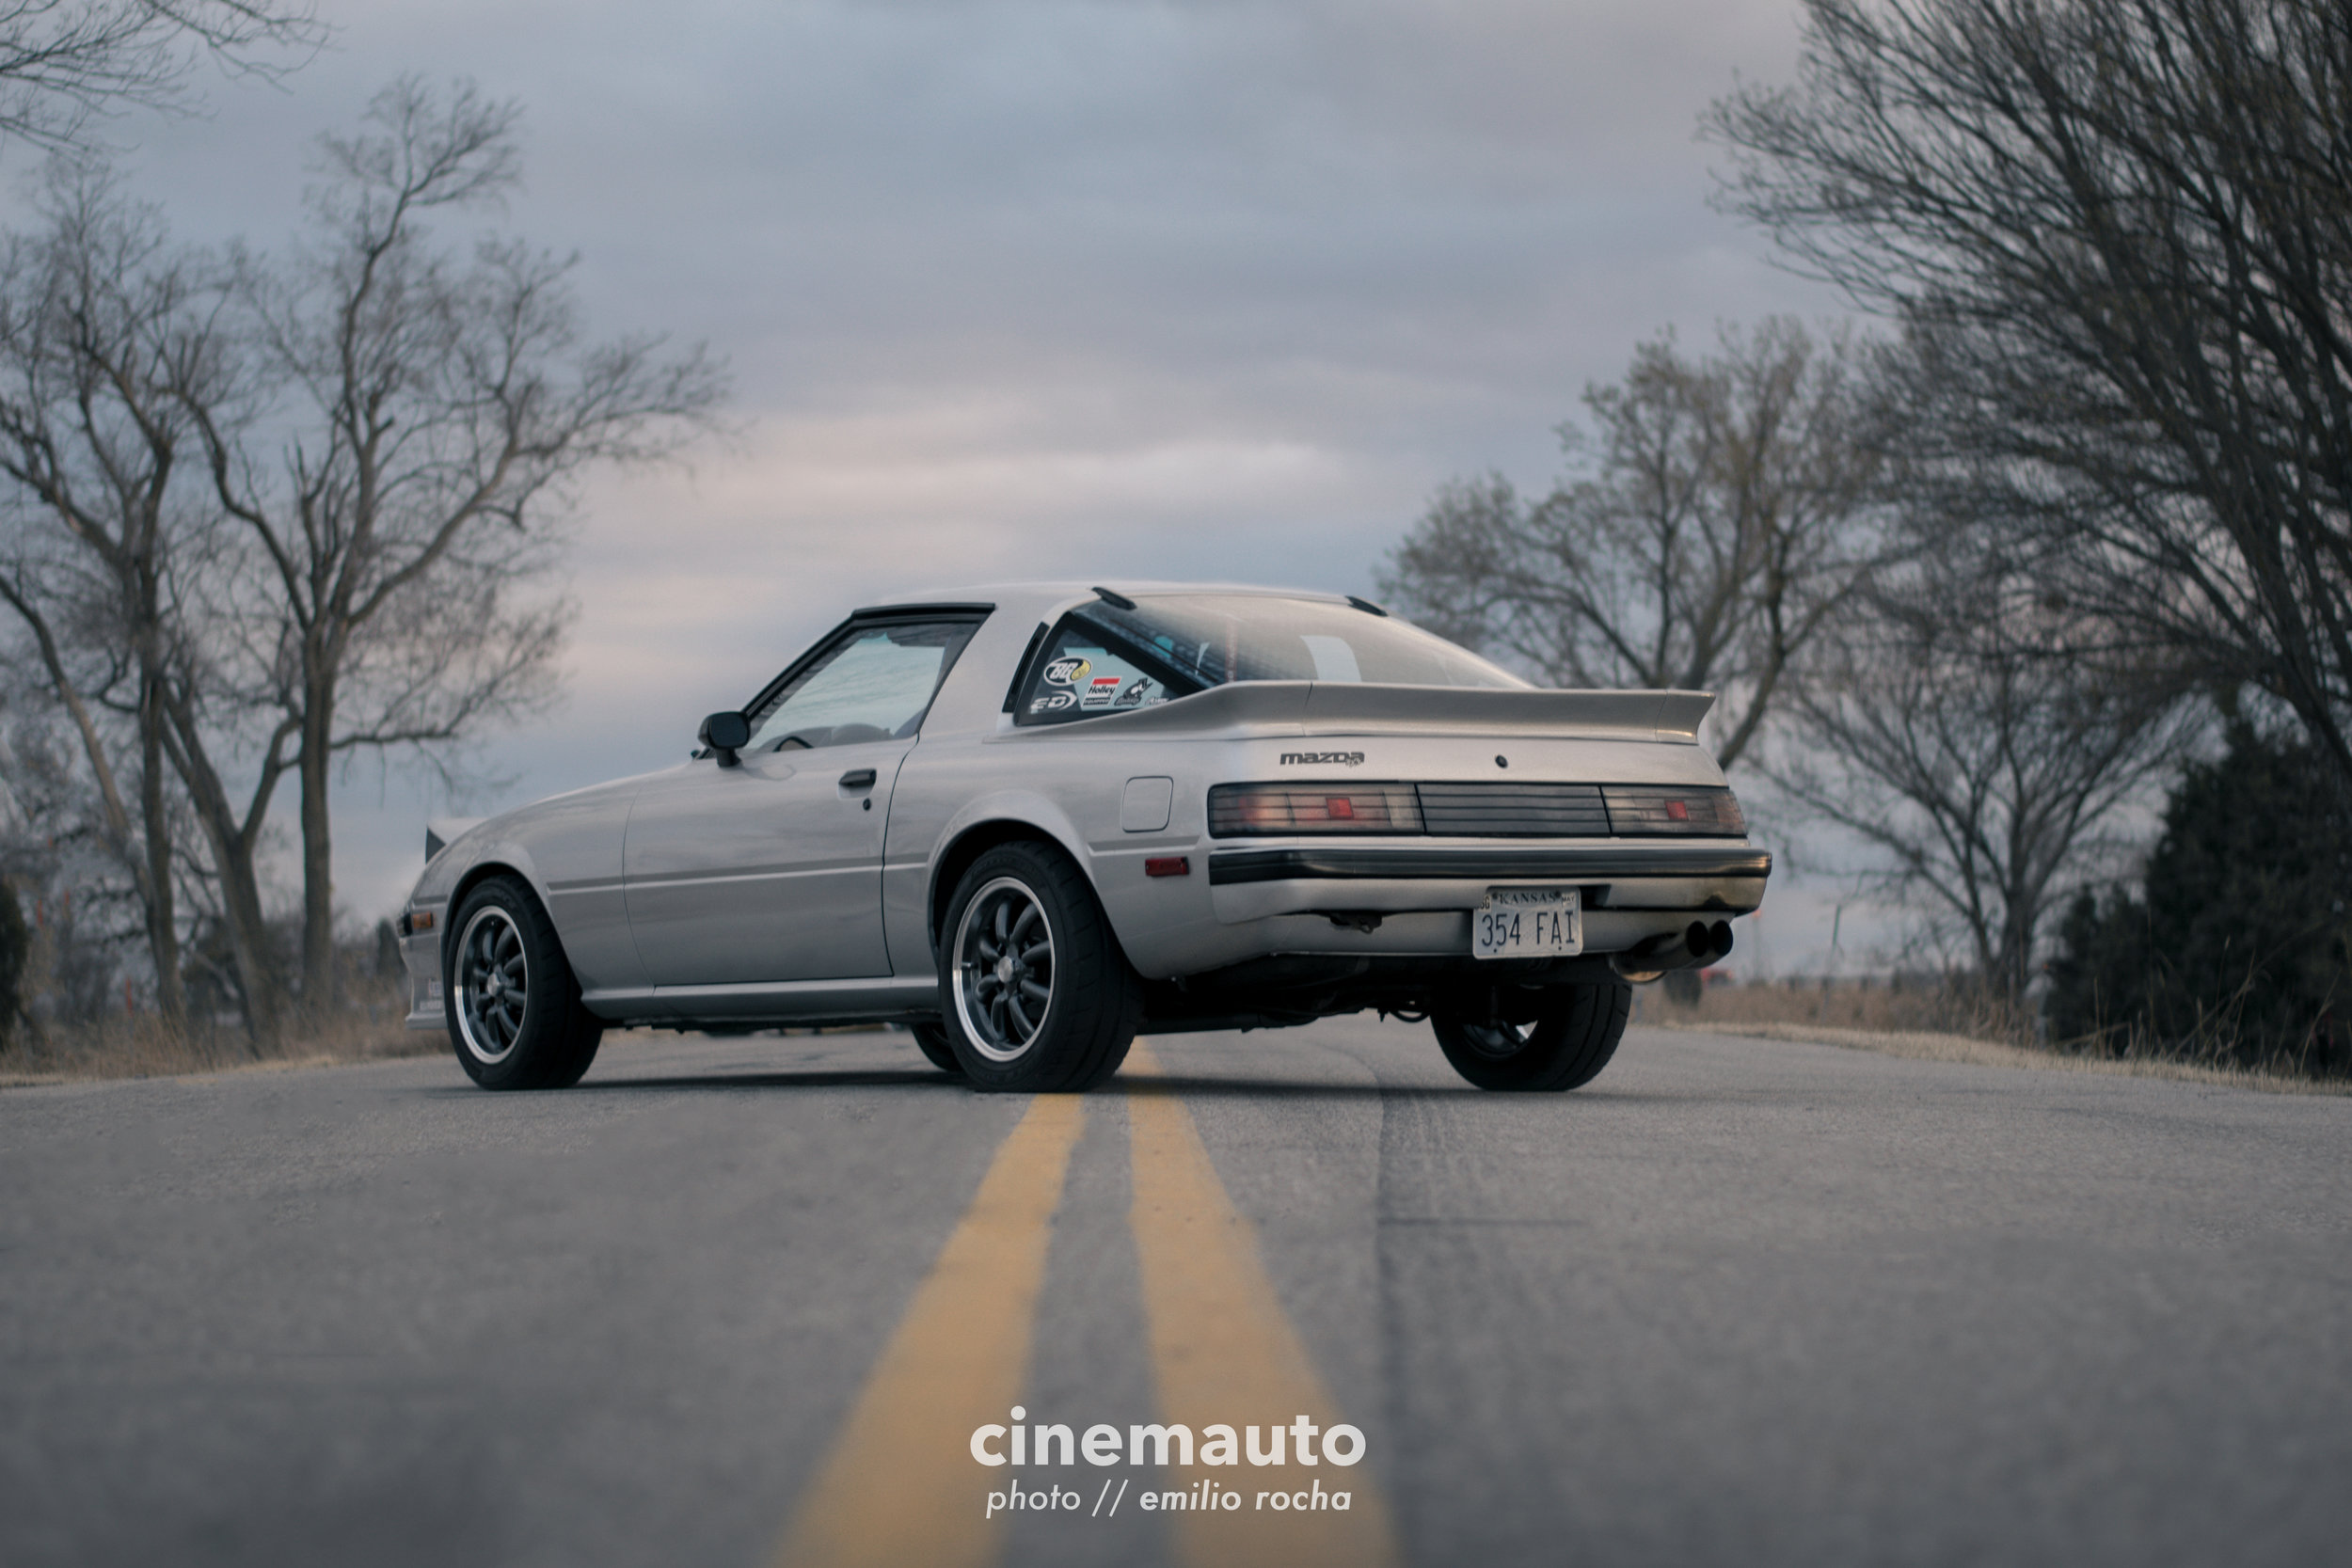 Cinemauto-RX7-17.jpg